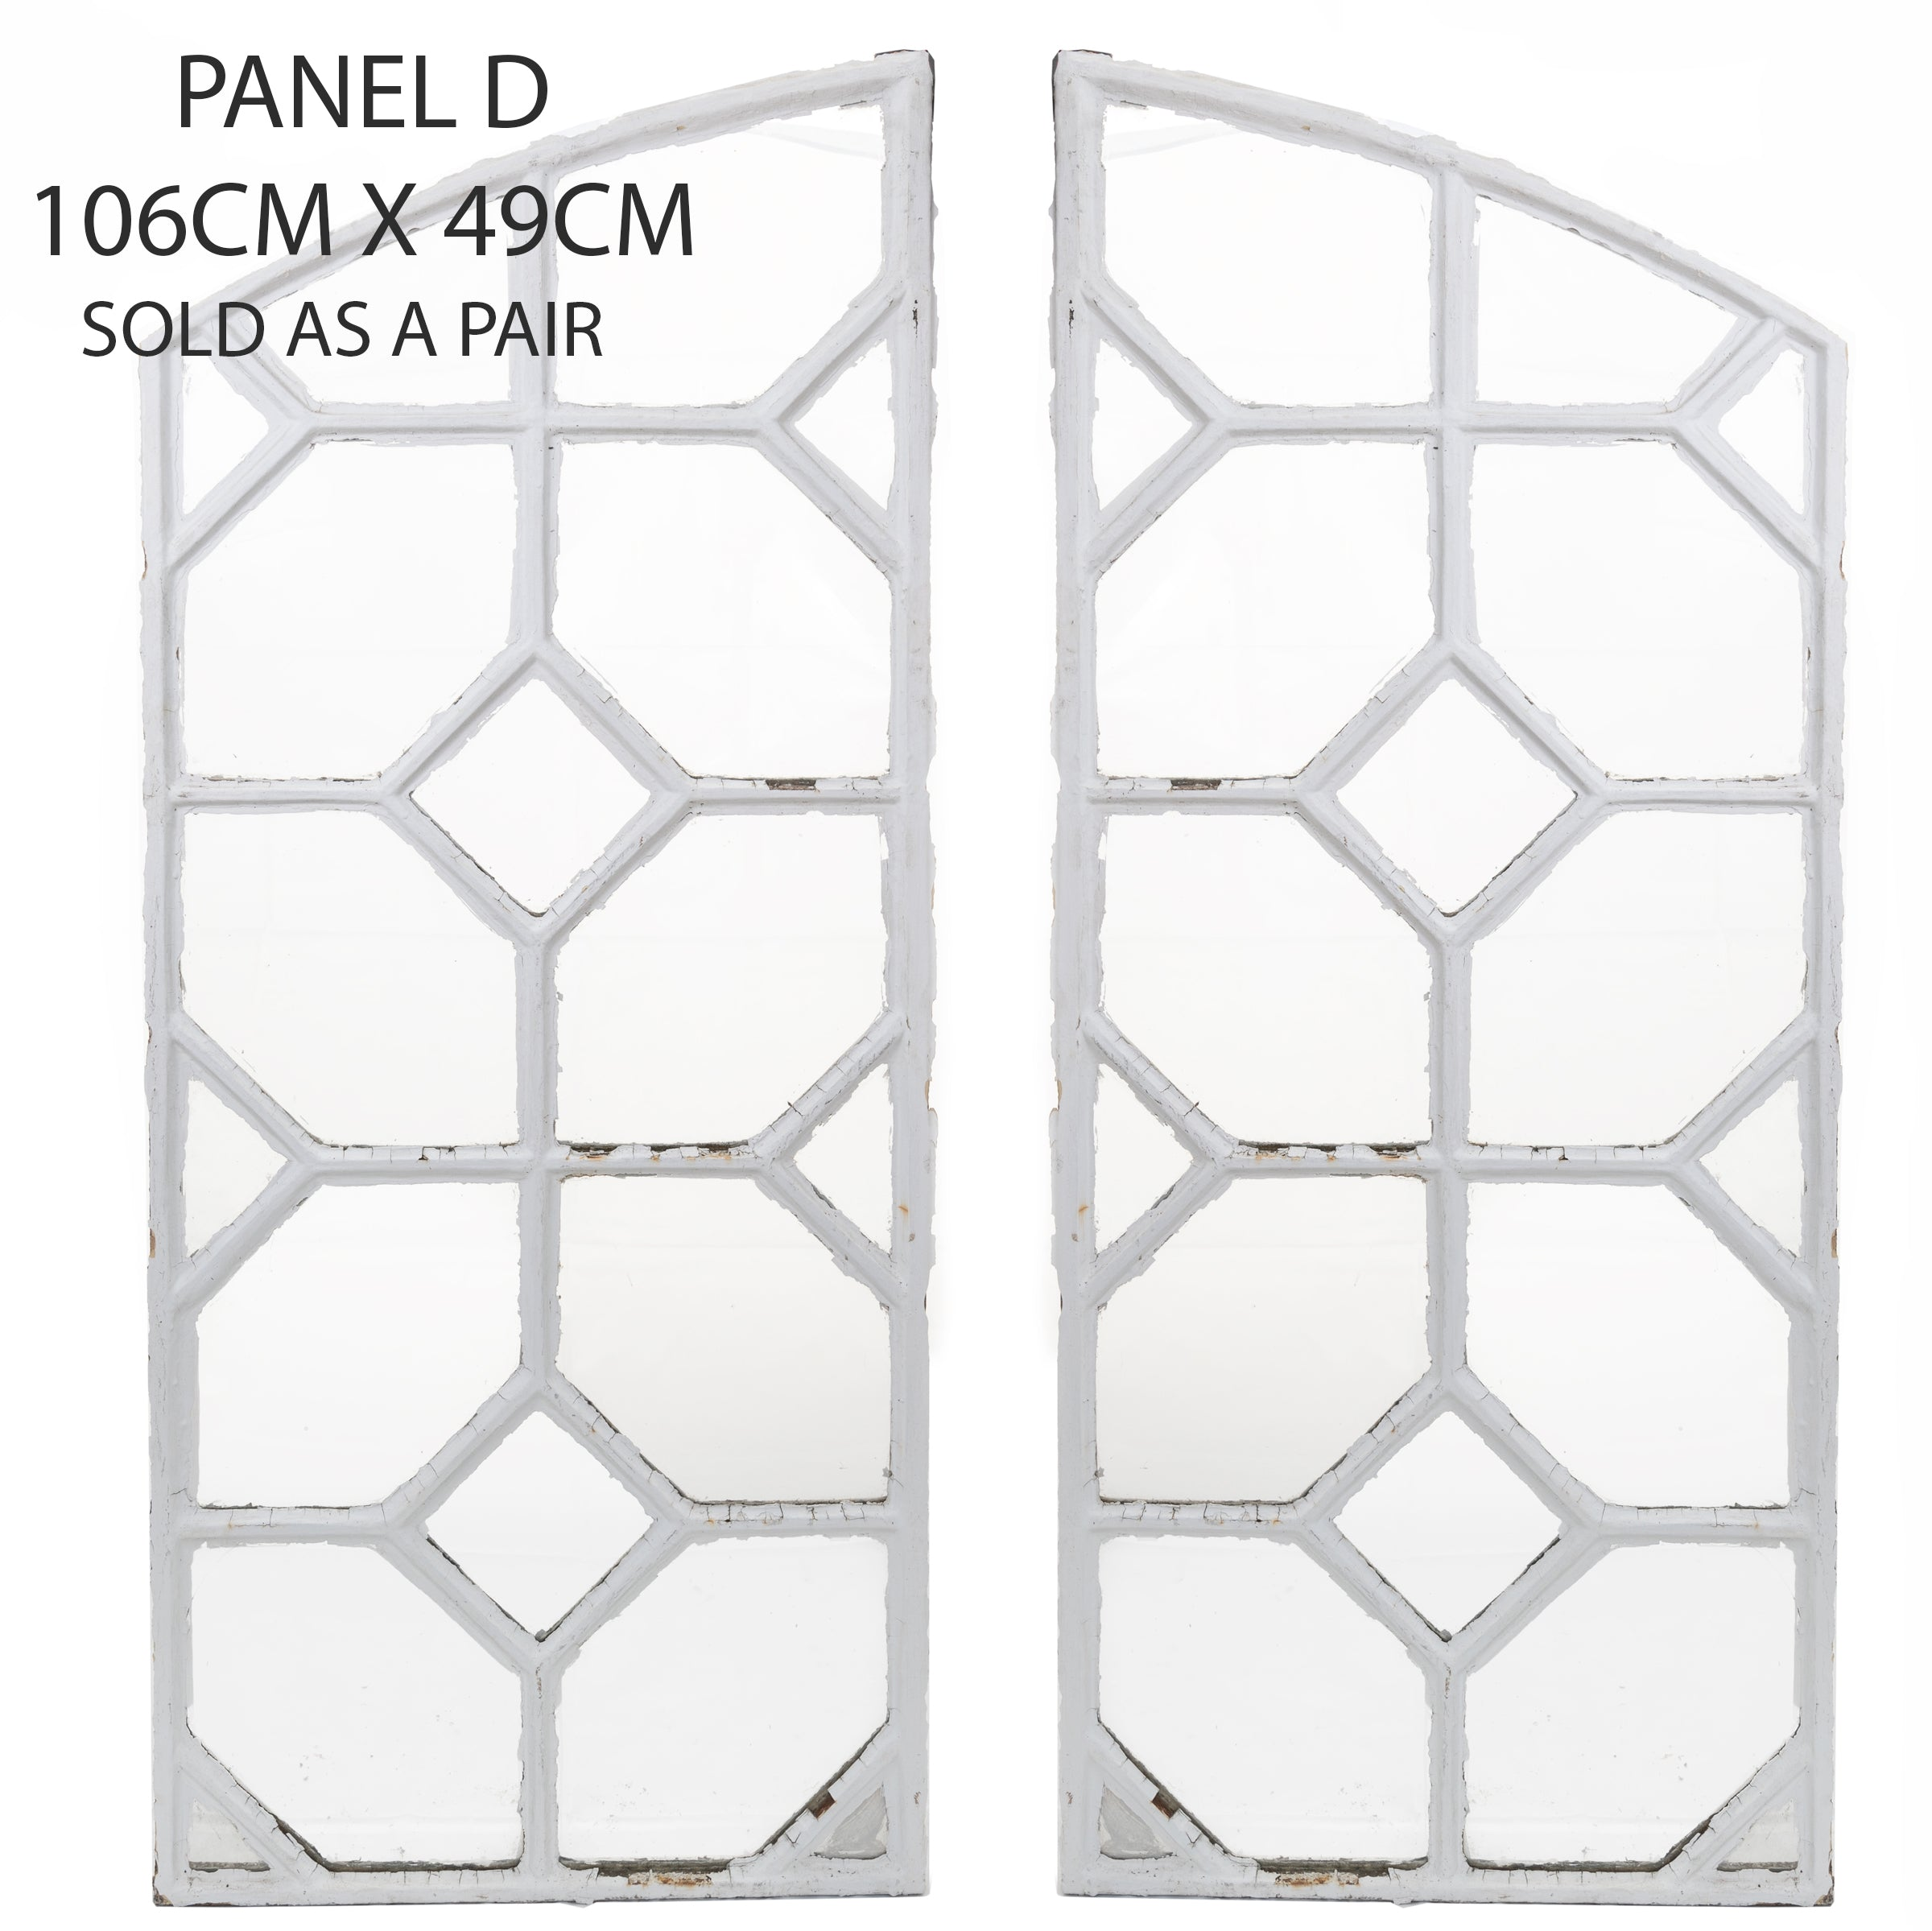 Reclaimed Late 19th Century Crittall Style Honeycomb Window Panels - D